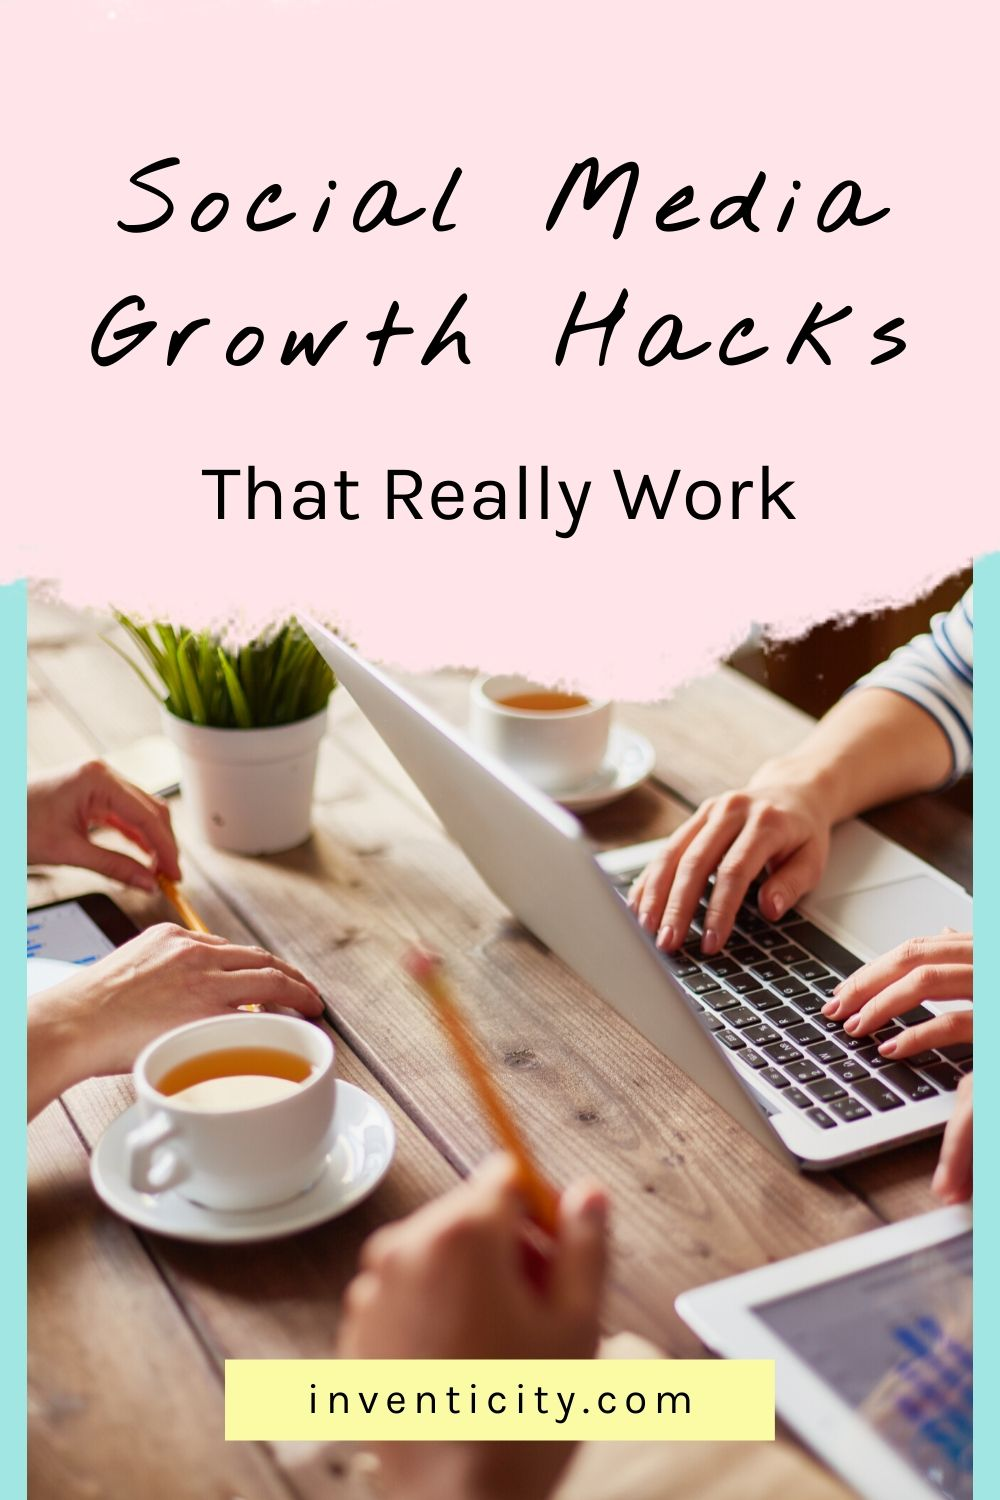 Social Media Growth Hacks that Really Work 2